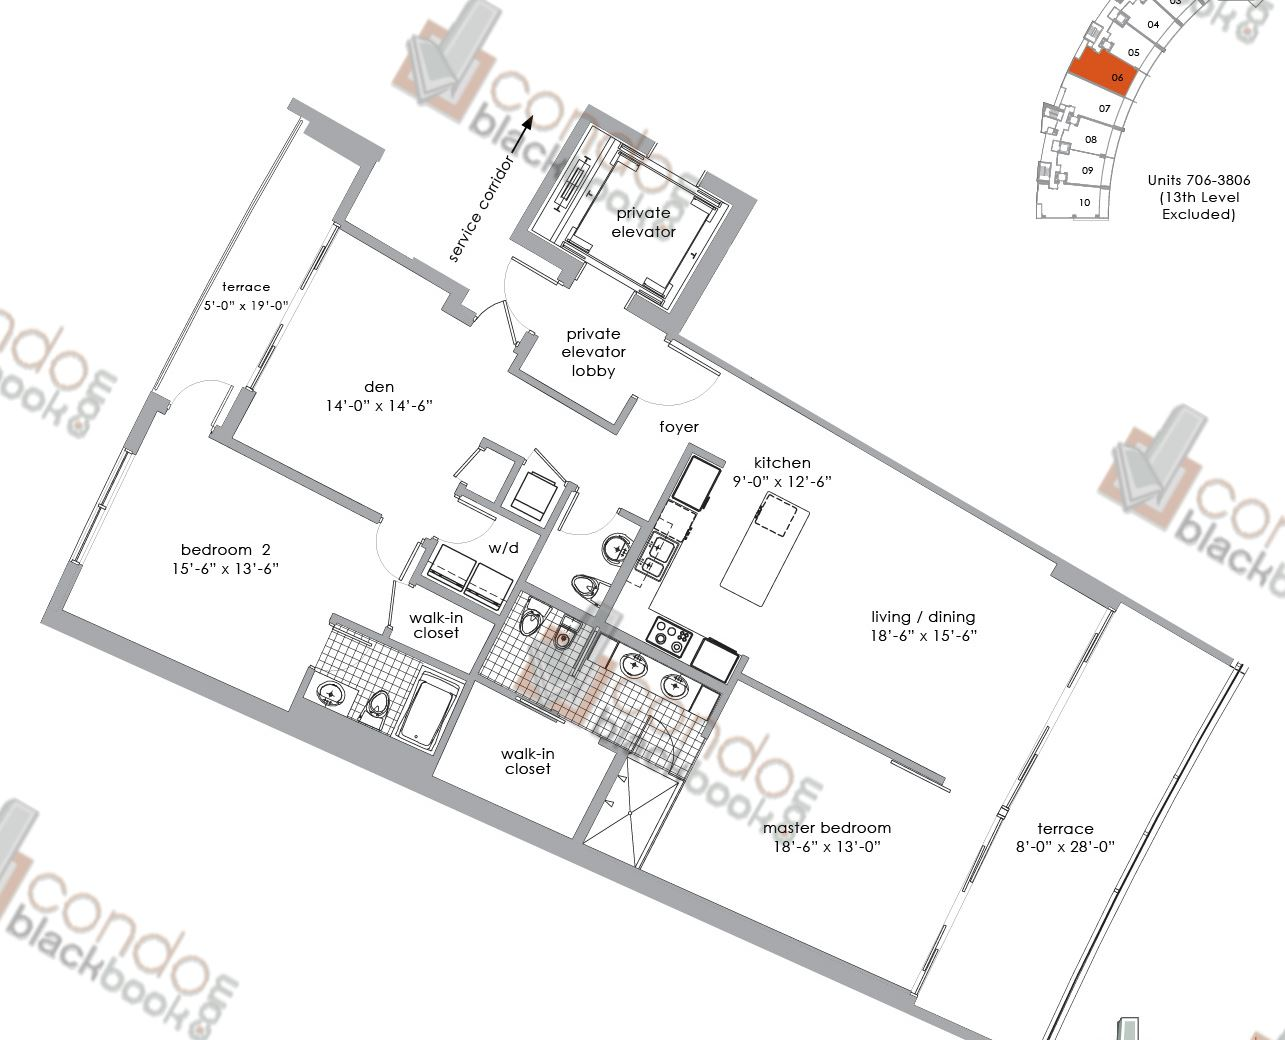 Floor plan for Paramount Bay Edgewater Miami, model 06, line 06, 2+Den/2,5 bedrooms, 1,782 sq ft